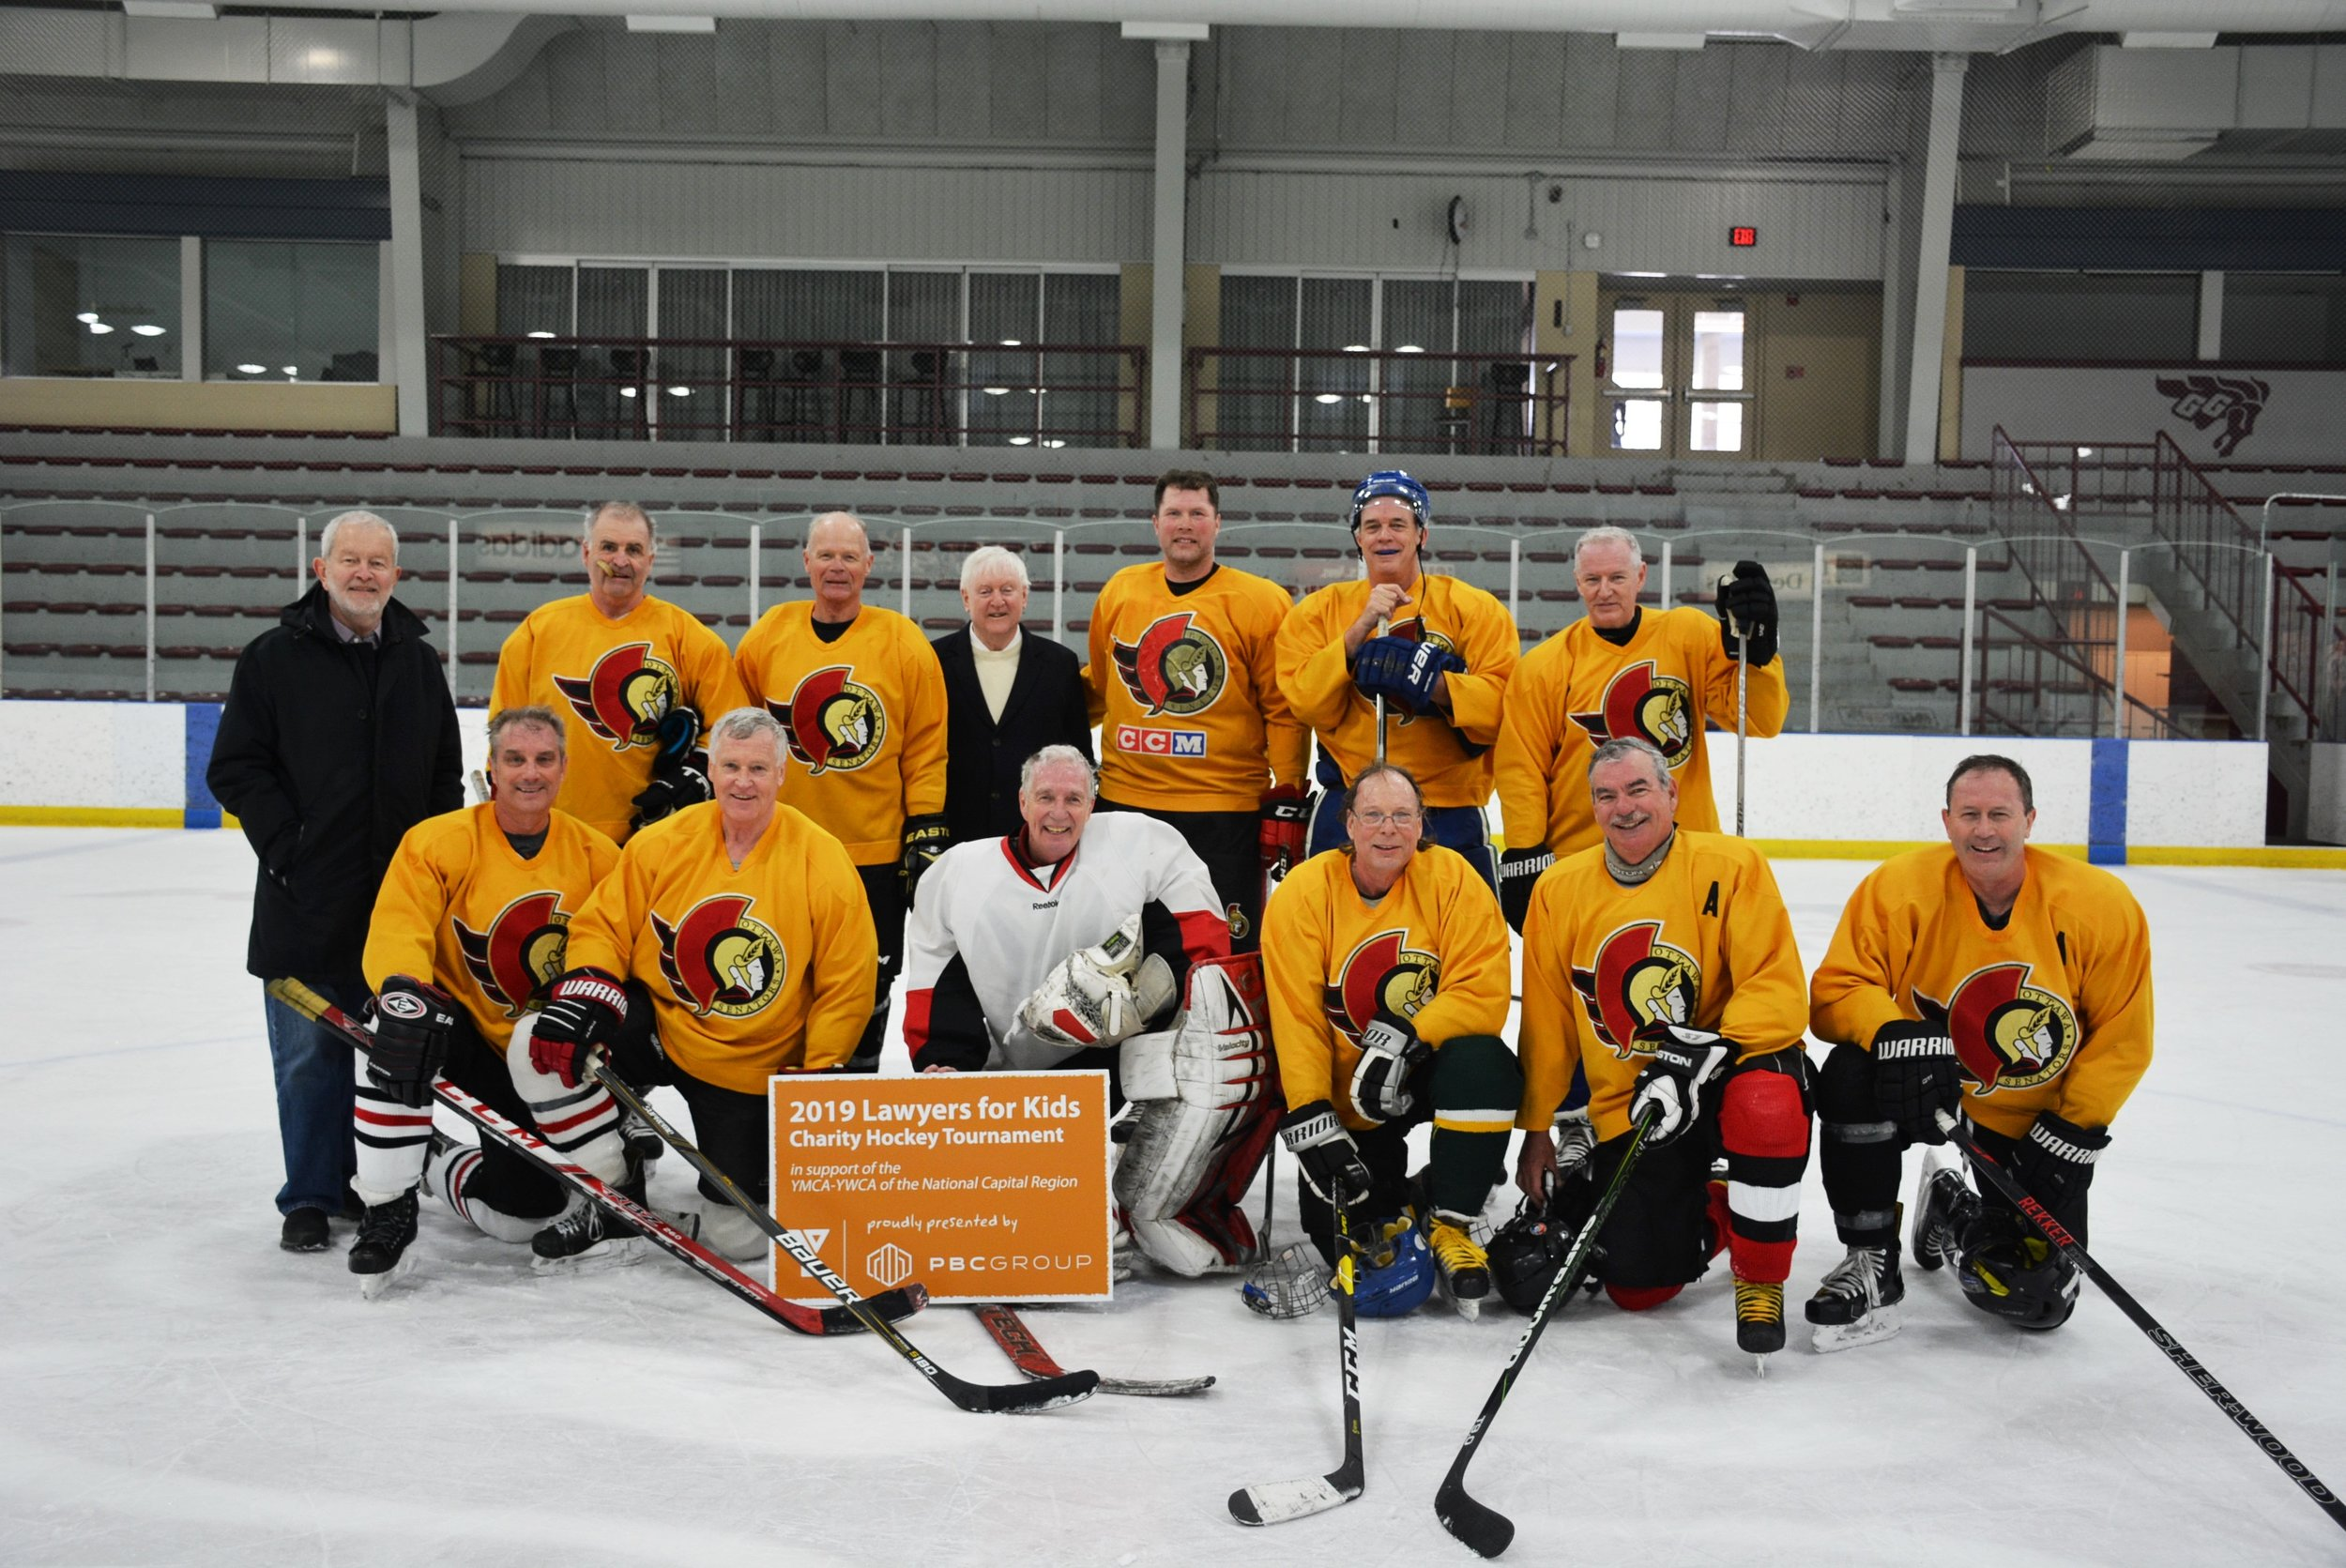 2019 Lawyers For Kids Charity Hockey Tournament Y Giving